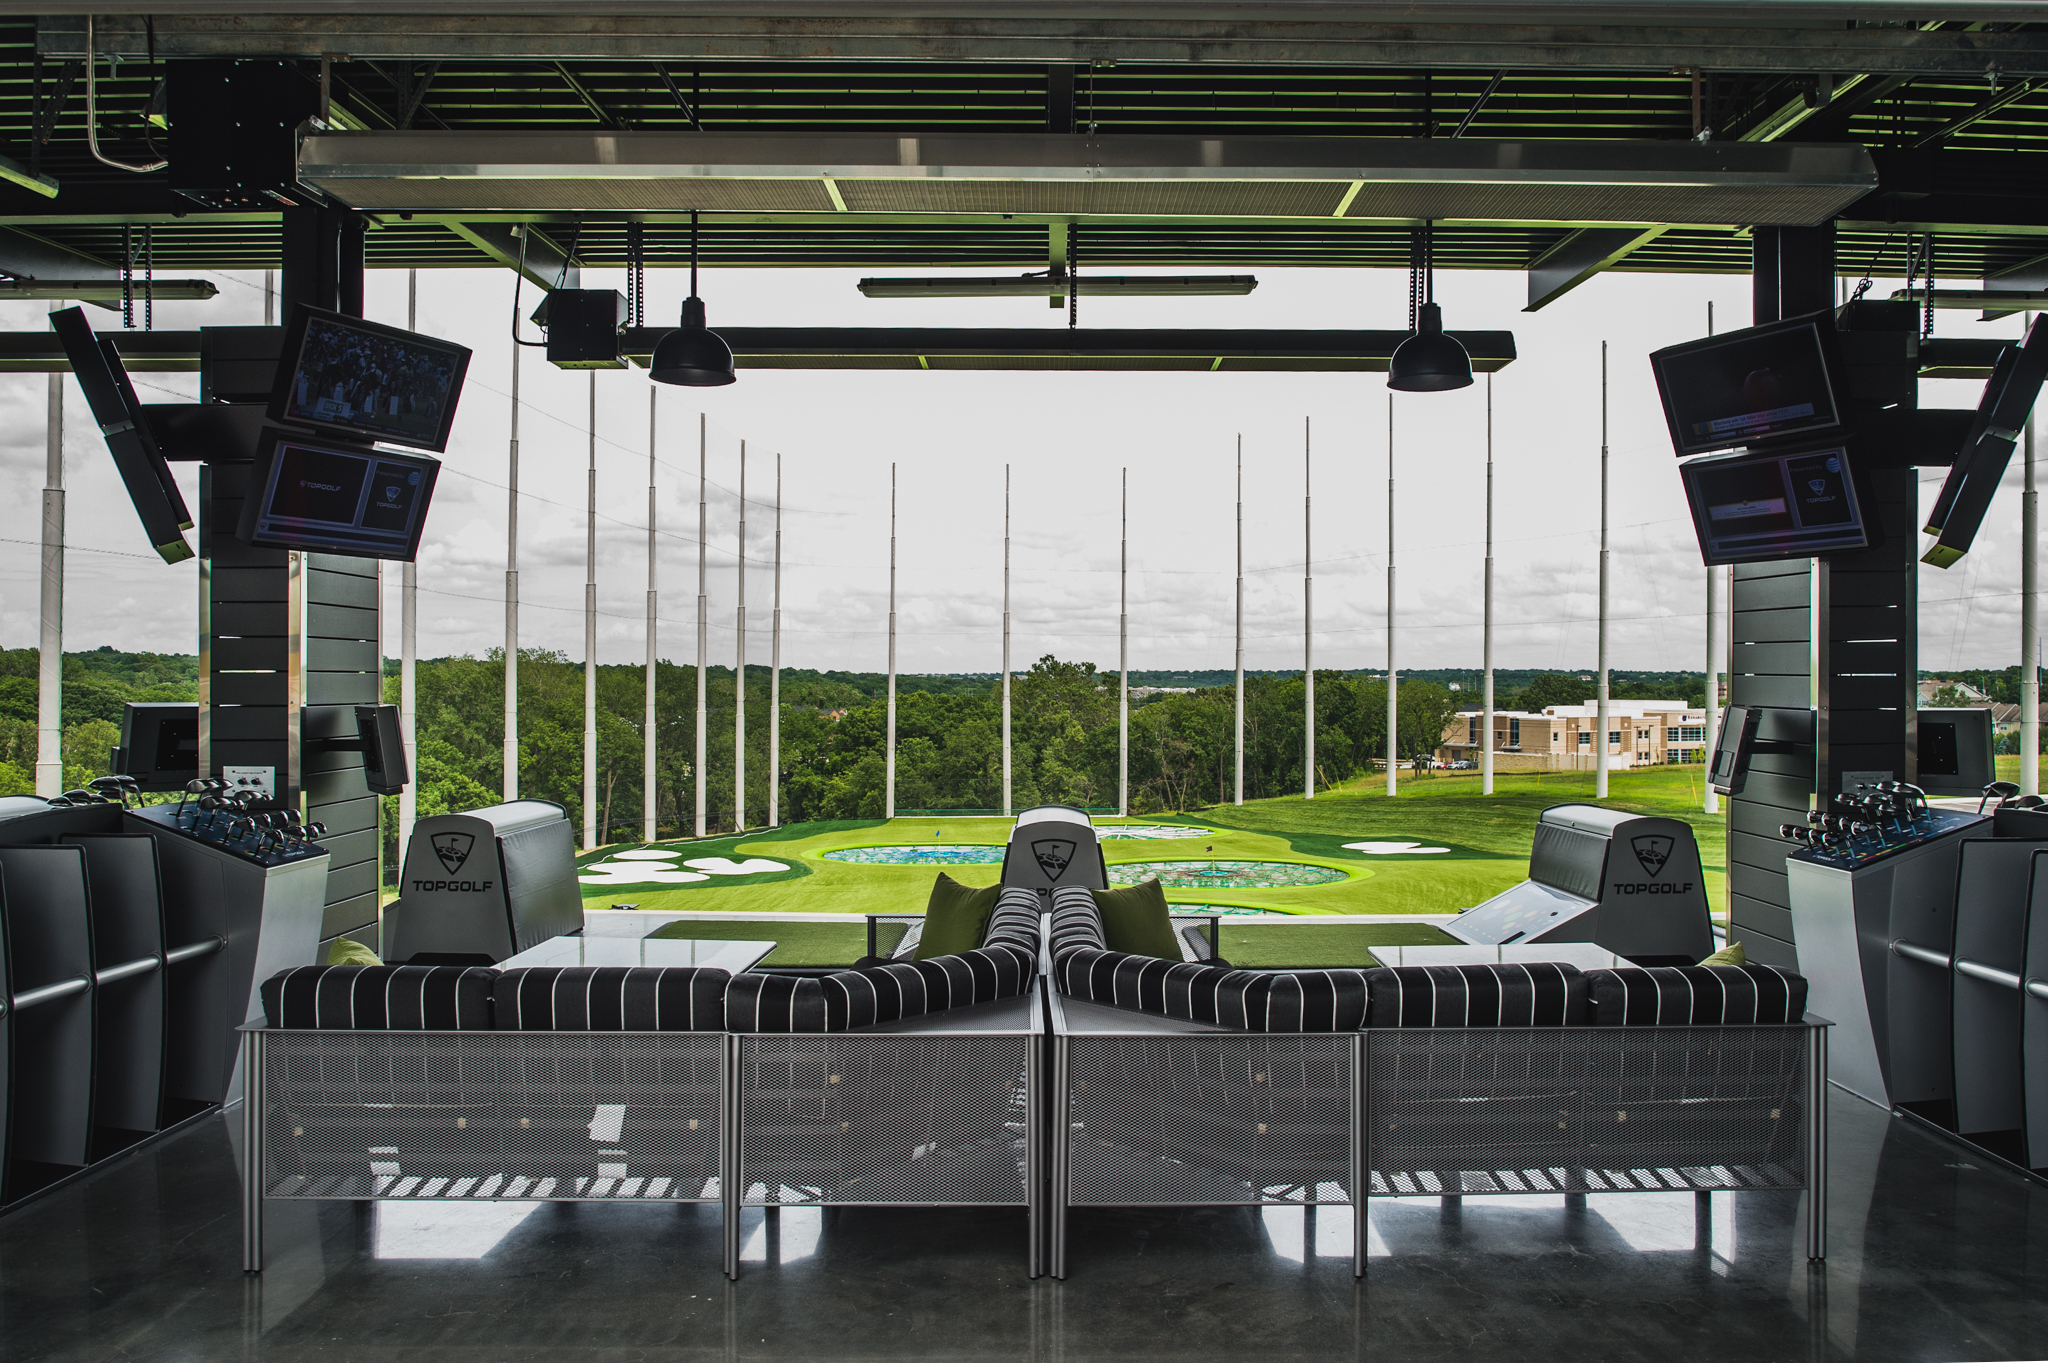 topgolf_kc-12.jpg